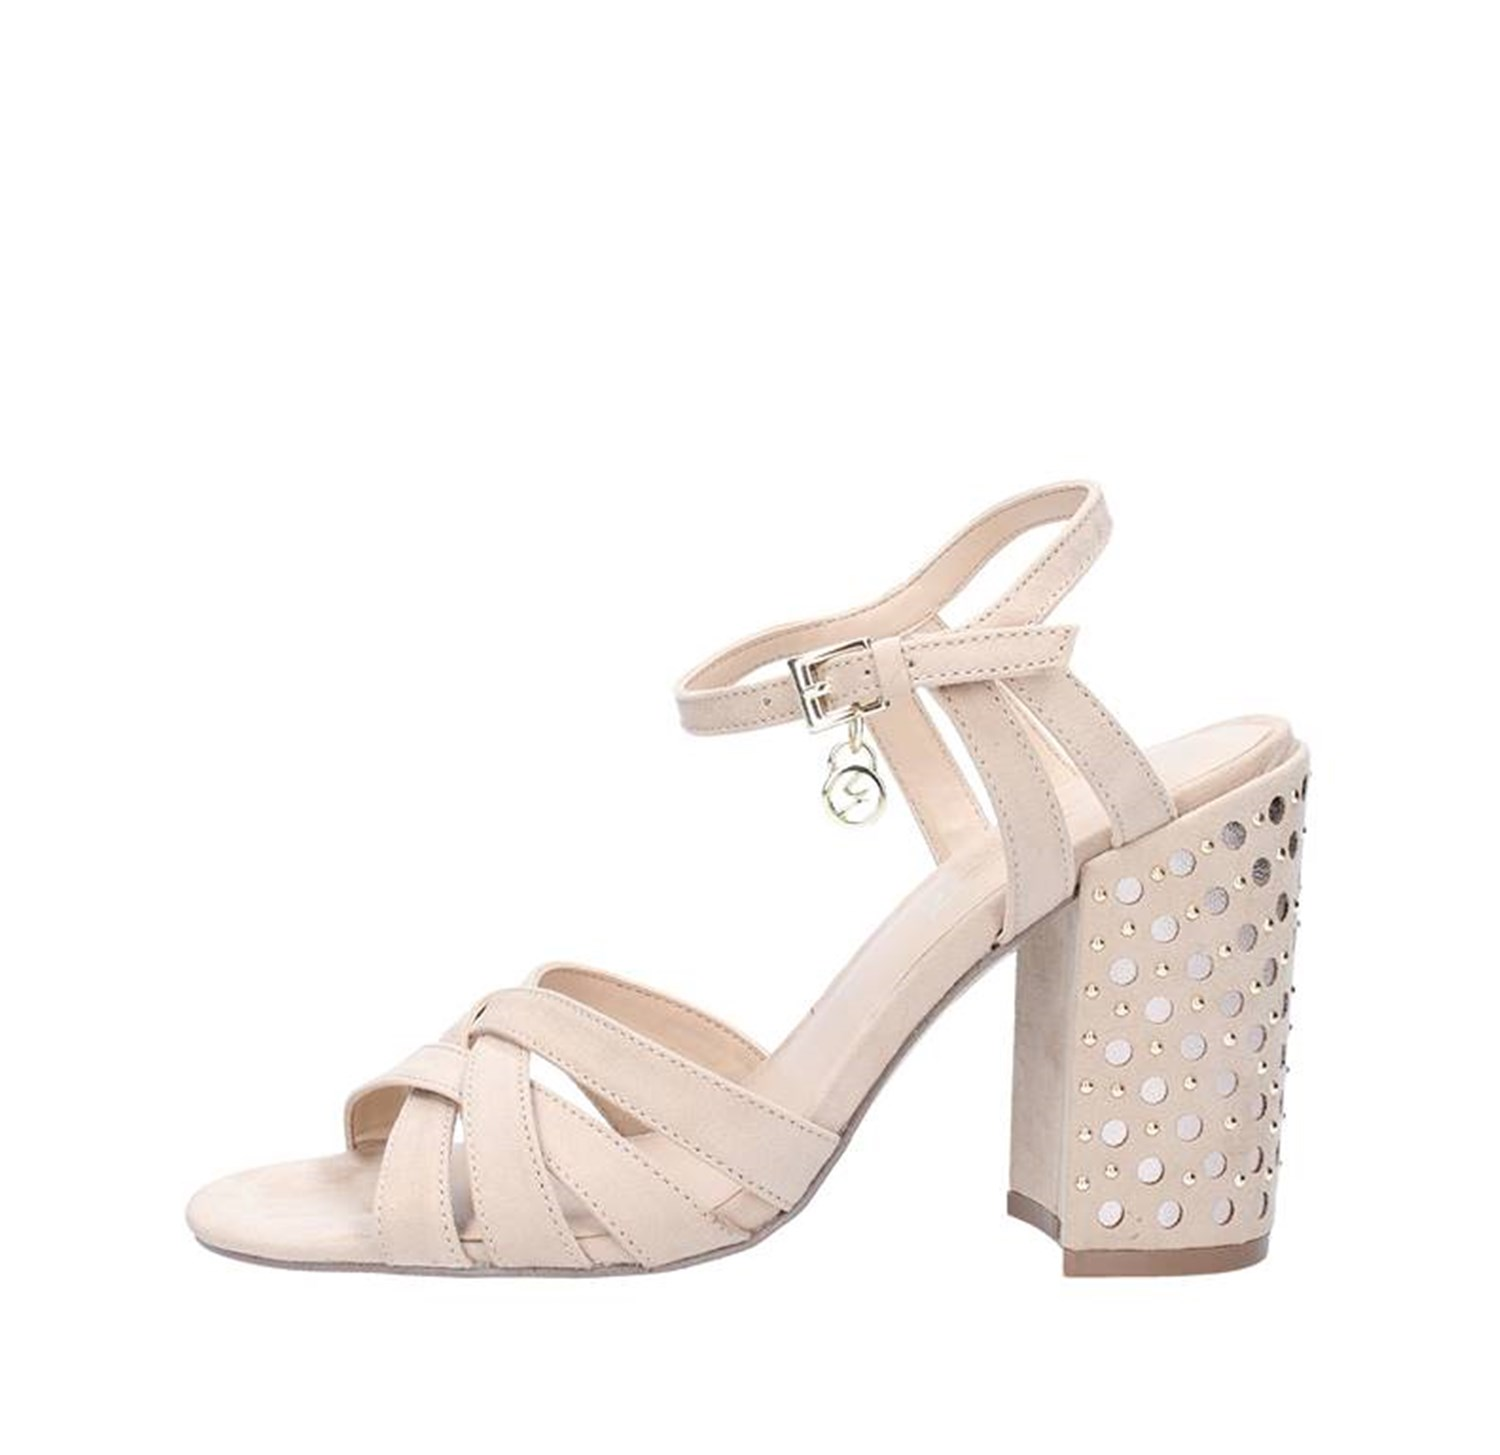 Gattinoni Roma Shoes Woman With heel BEIGE 0639